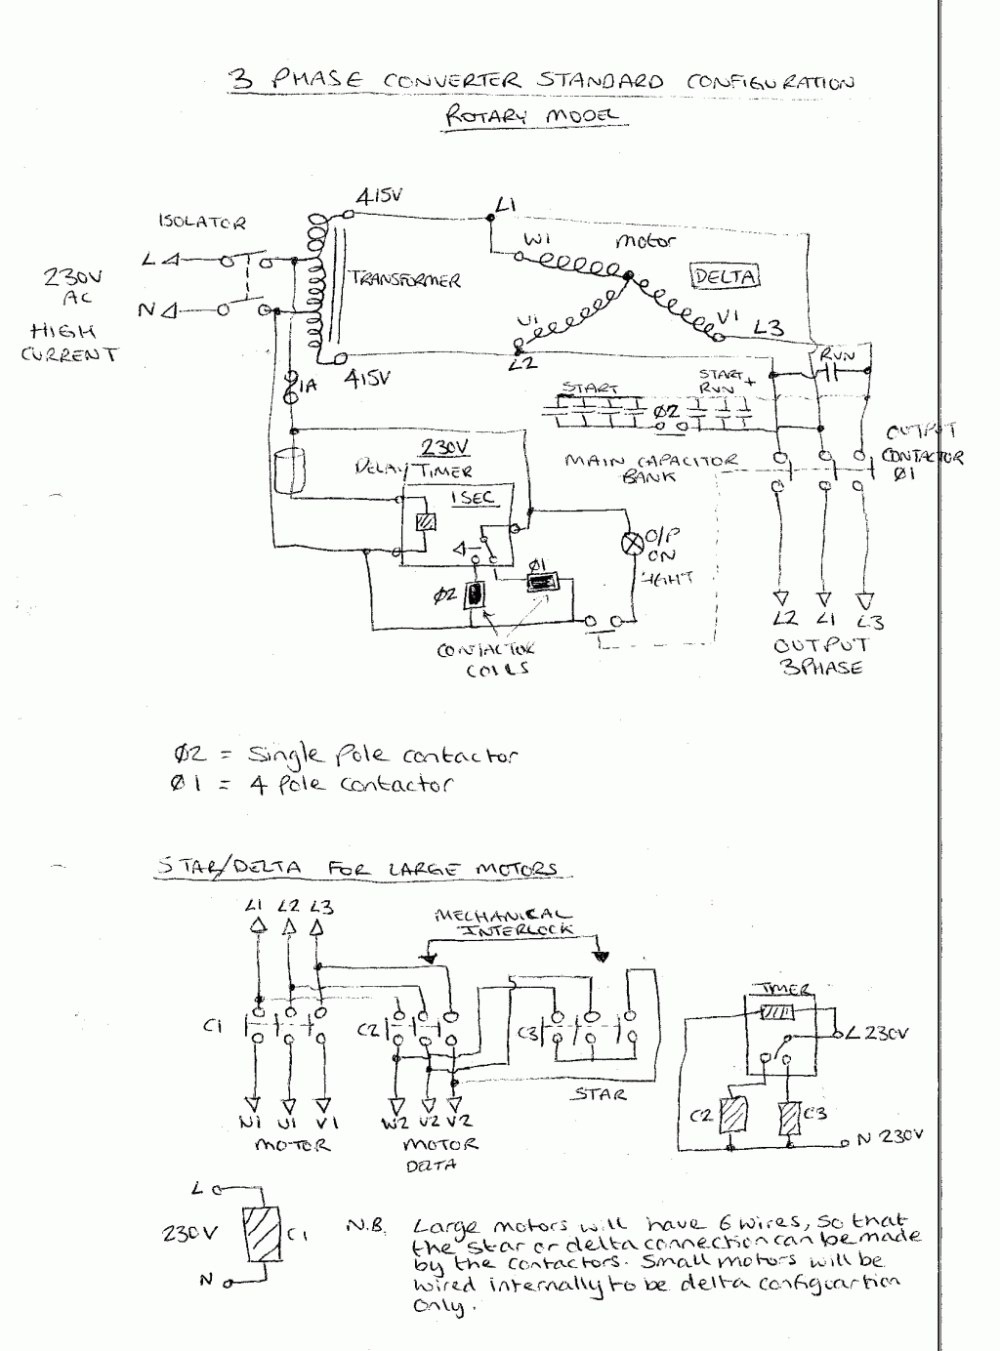 medium resolution of three phase static converter wiring diagram wiring diagrams baldor reliance motor wiring diagram 3 phase rotary converter wiring diagram free picture